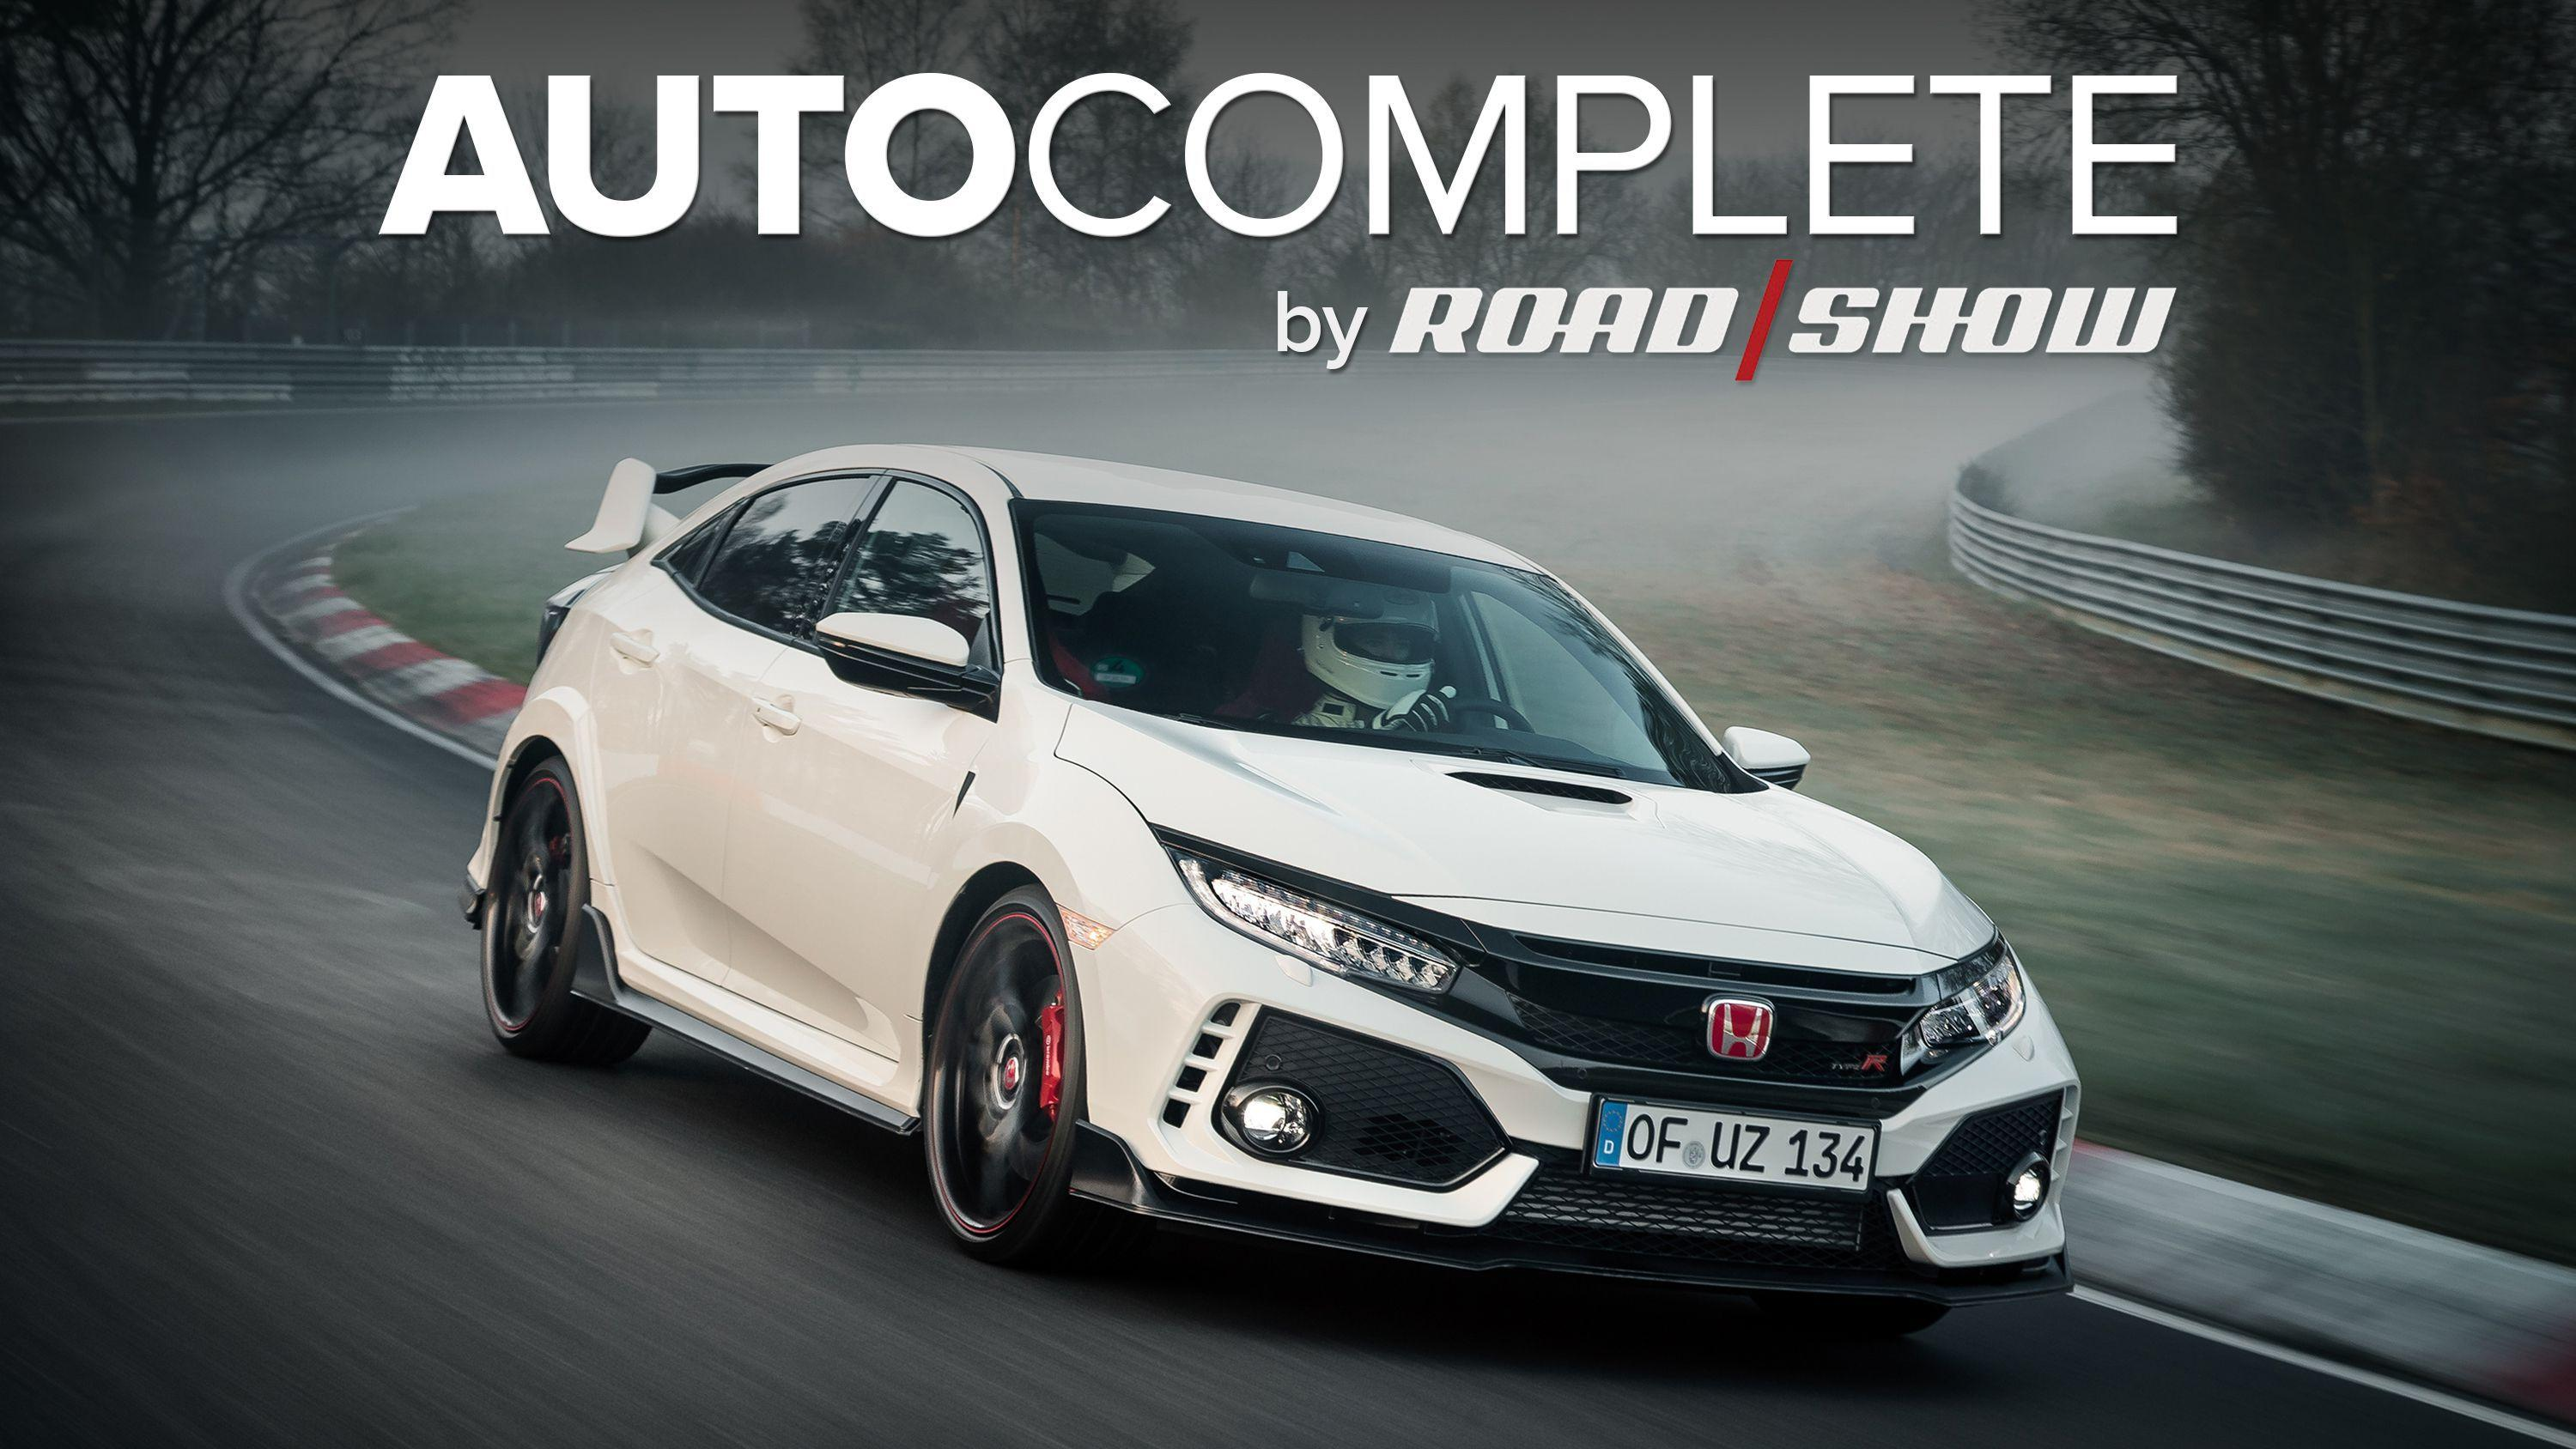 AutoComplete: Honda Civic Type R is the Nürburgring king once more